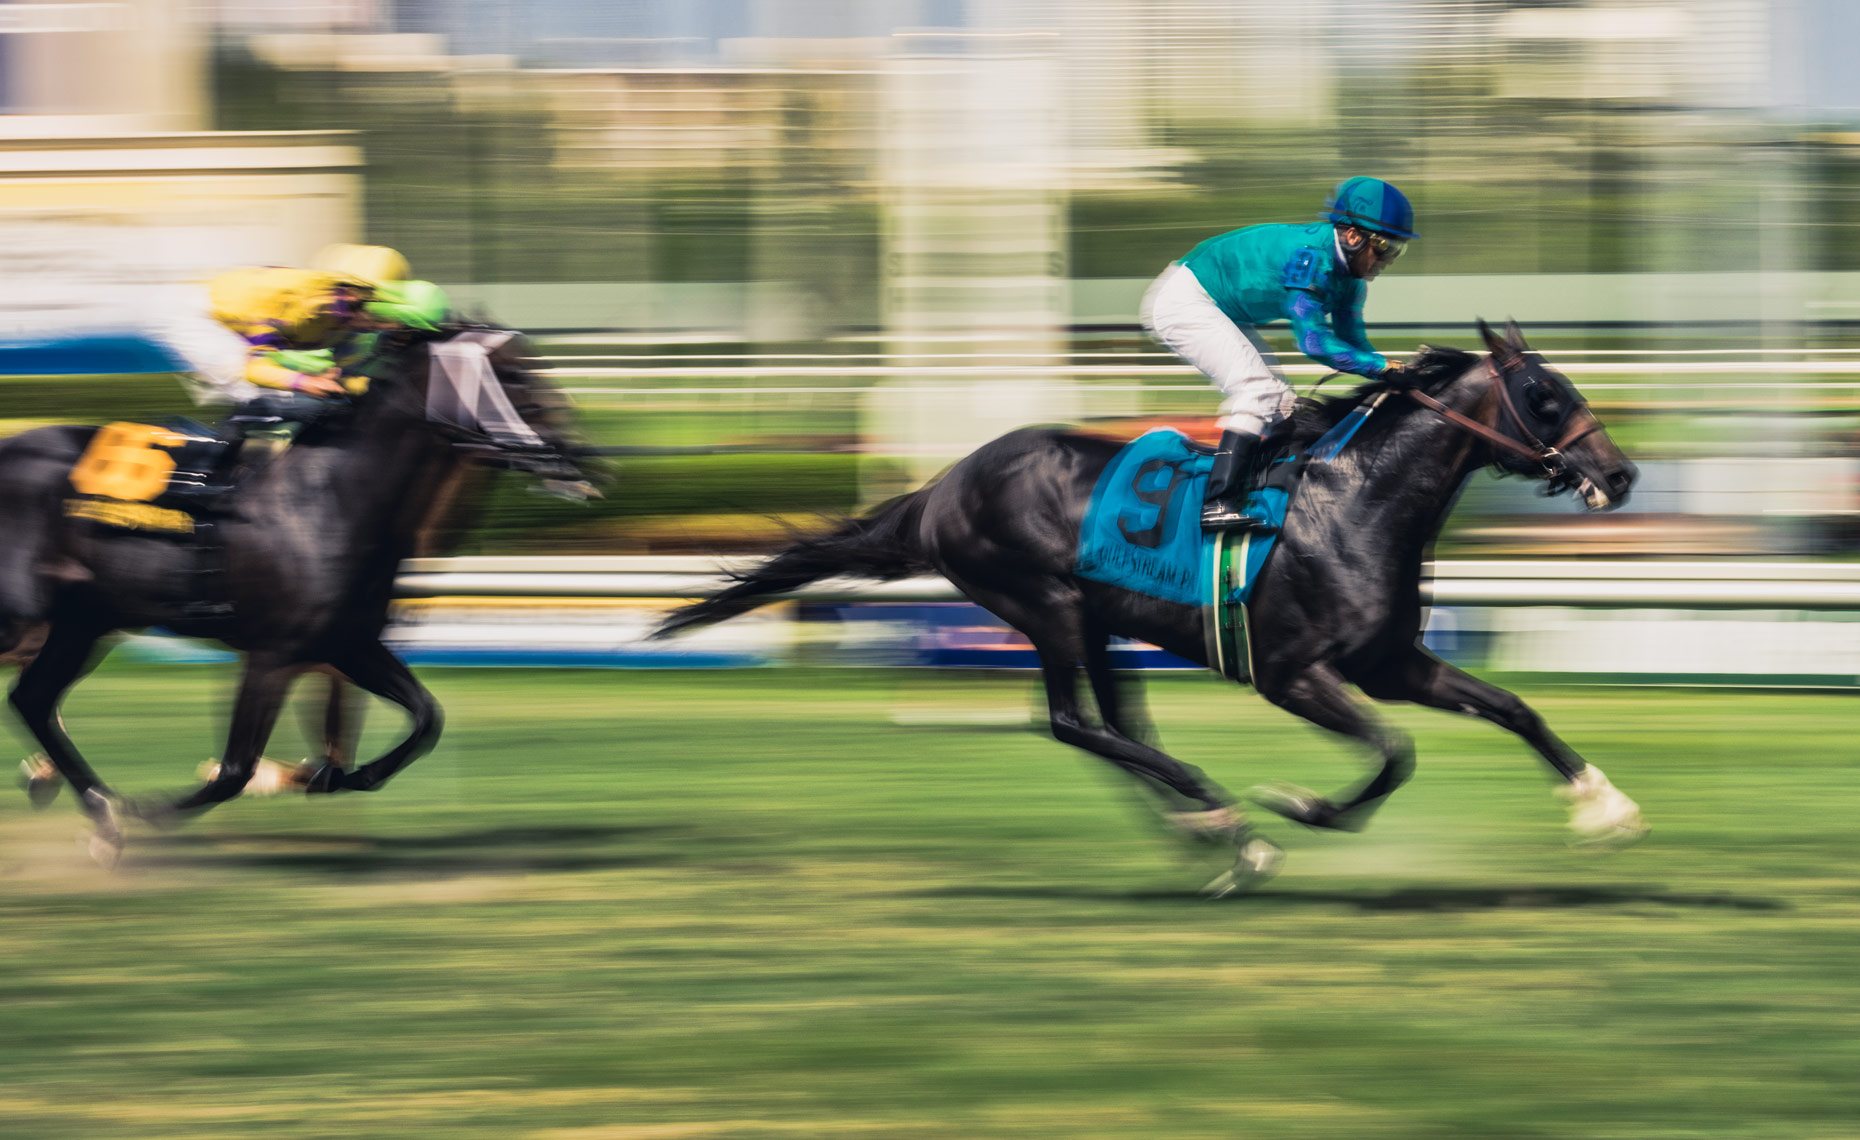 Horse racing at Gulfstream Park by Scott Redinger-Libolt / redphoto